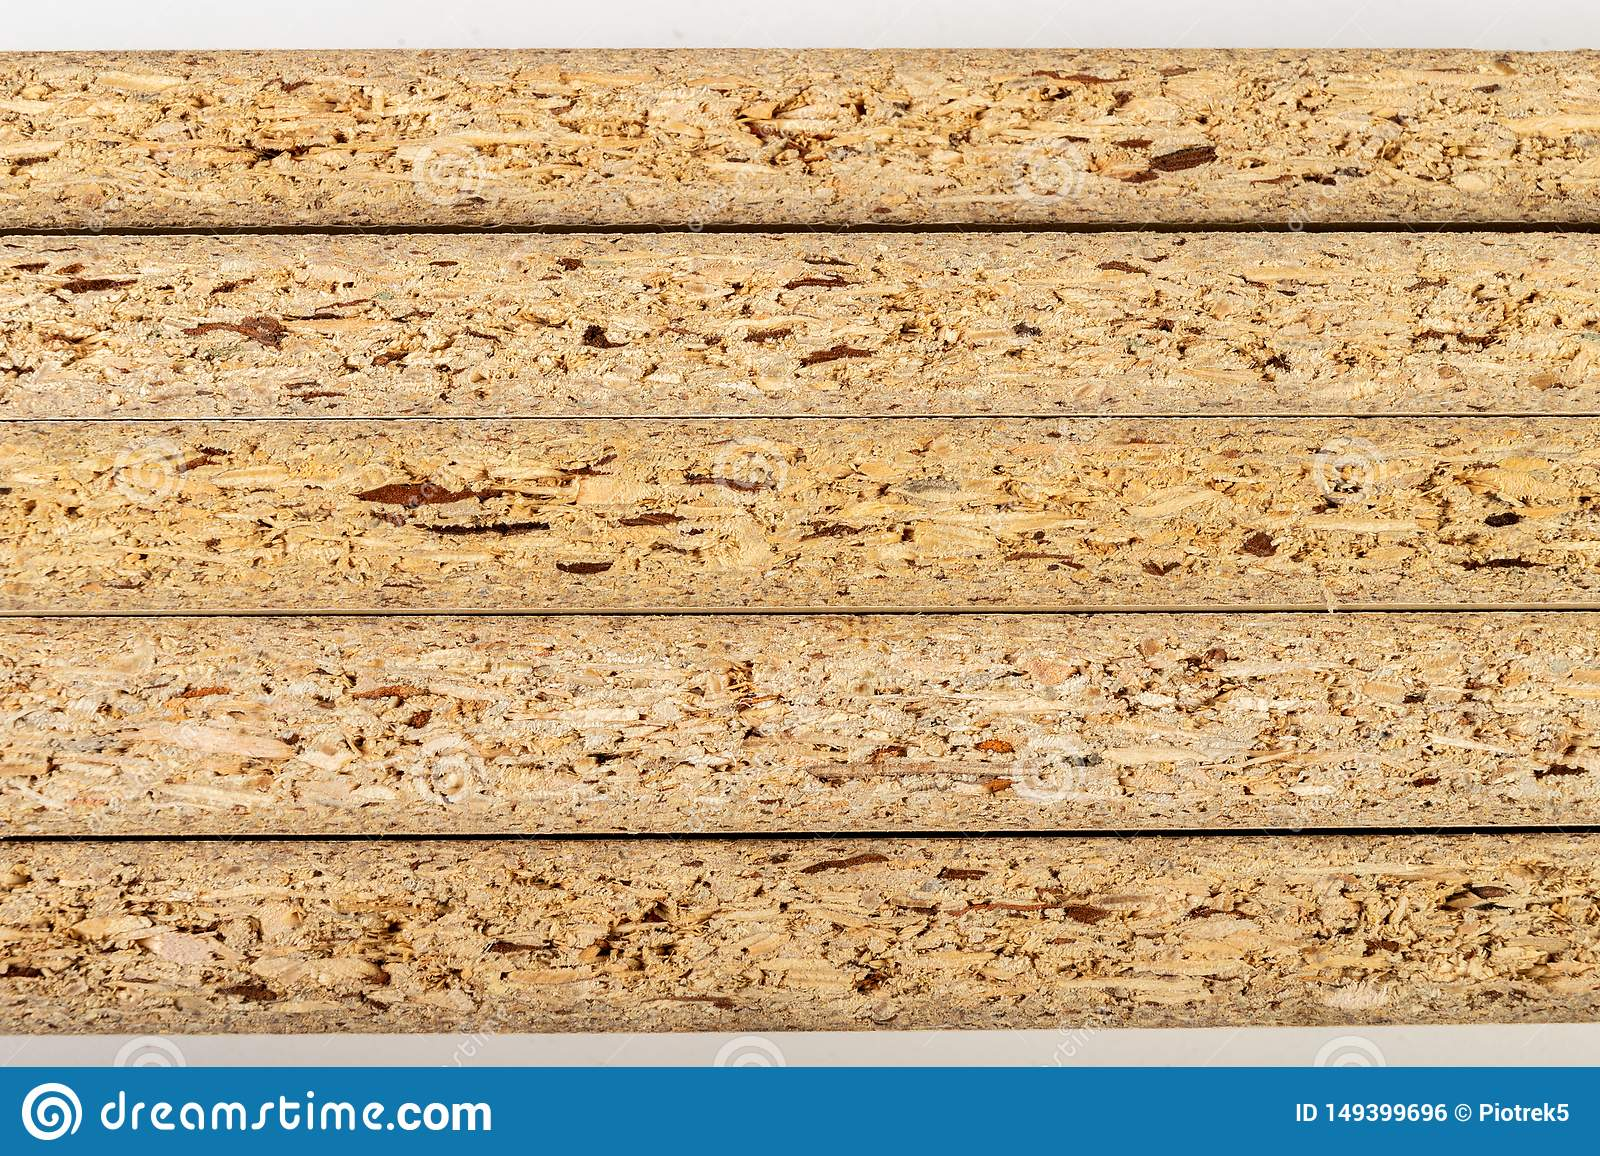 Particleboard With Veneer Is Cut Into Small Pieces